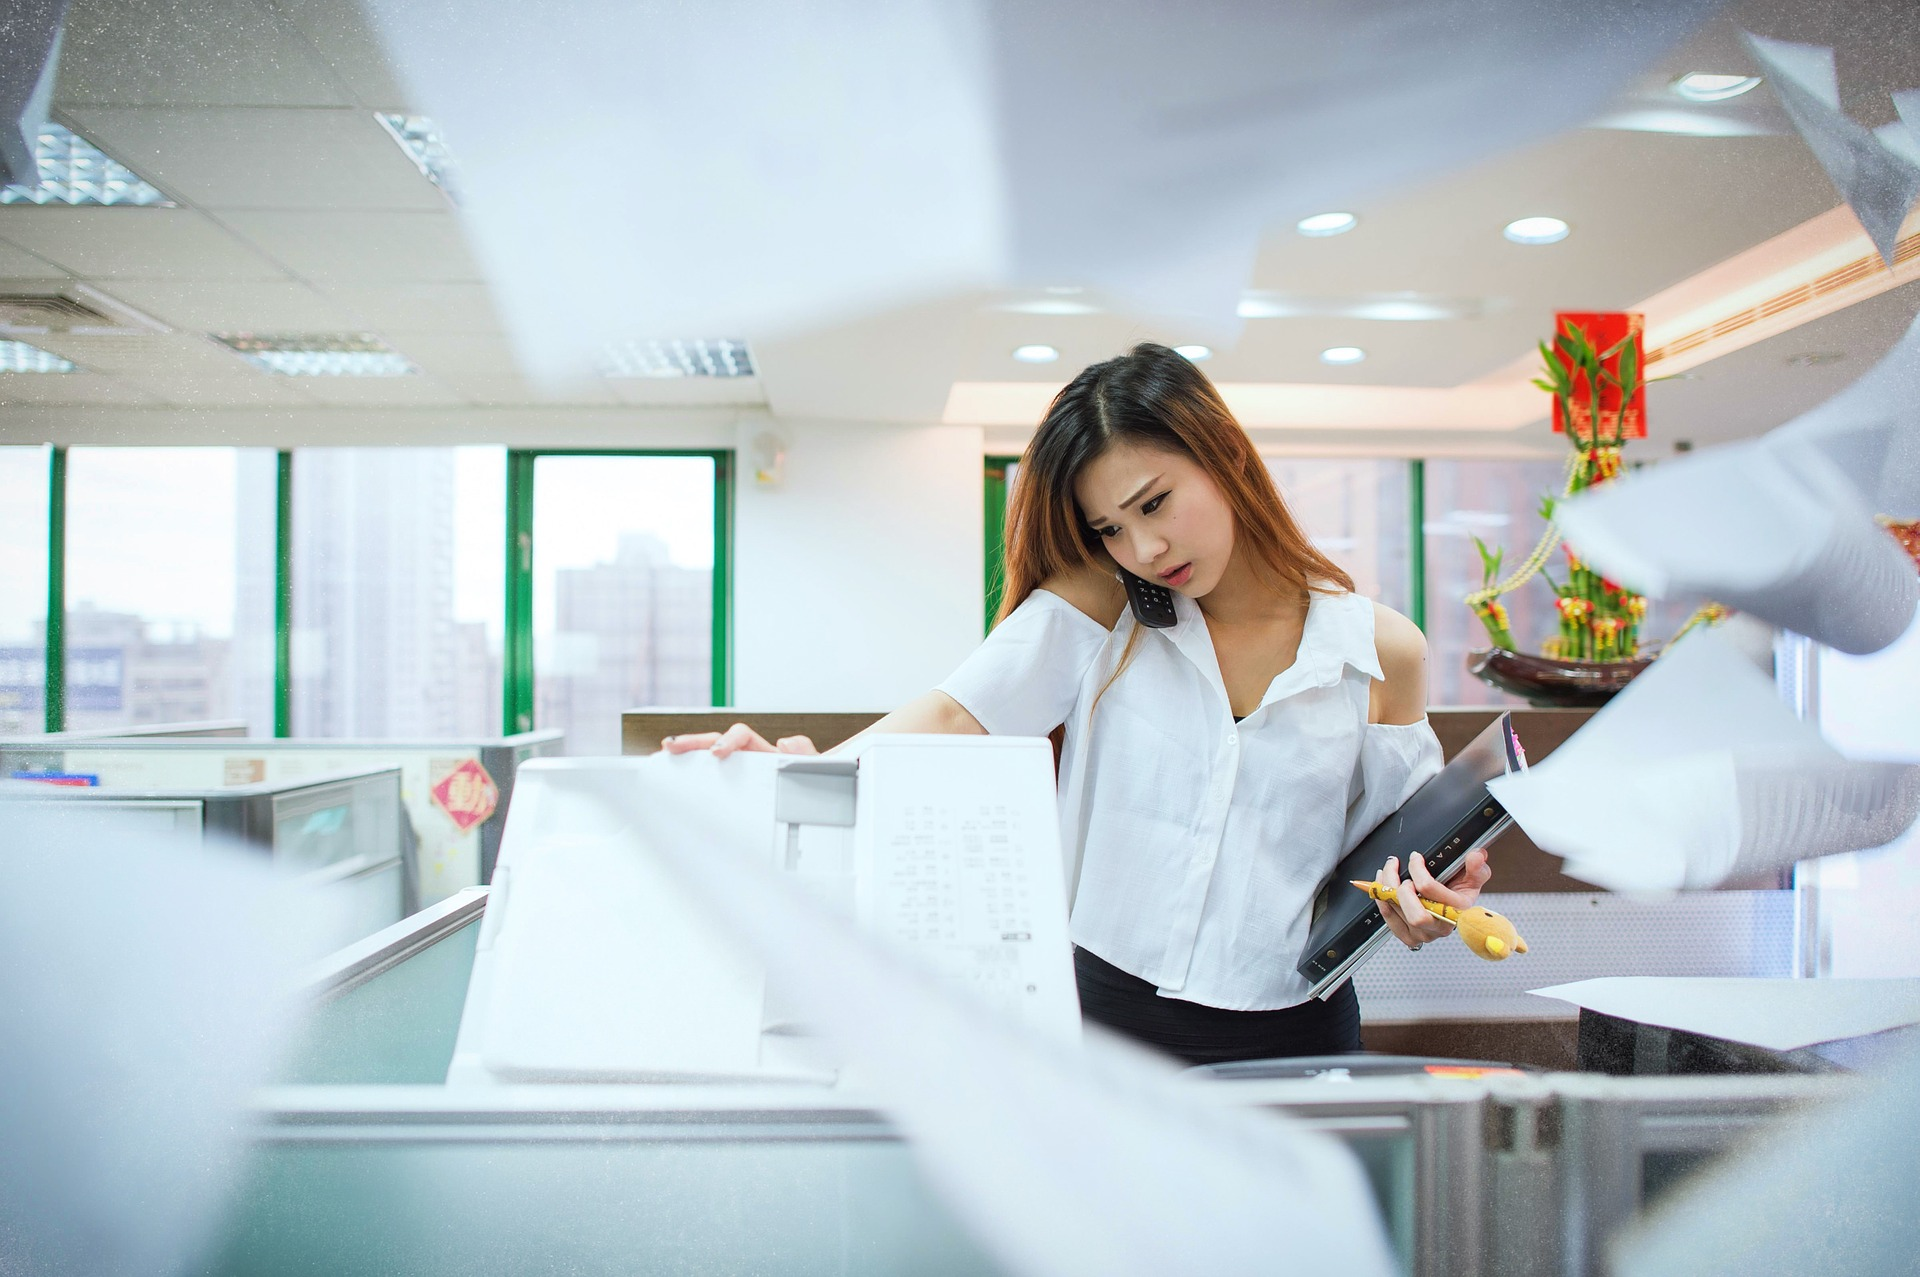 marketing_stock_photo_busy_woman.jpg